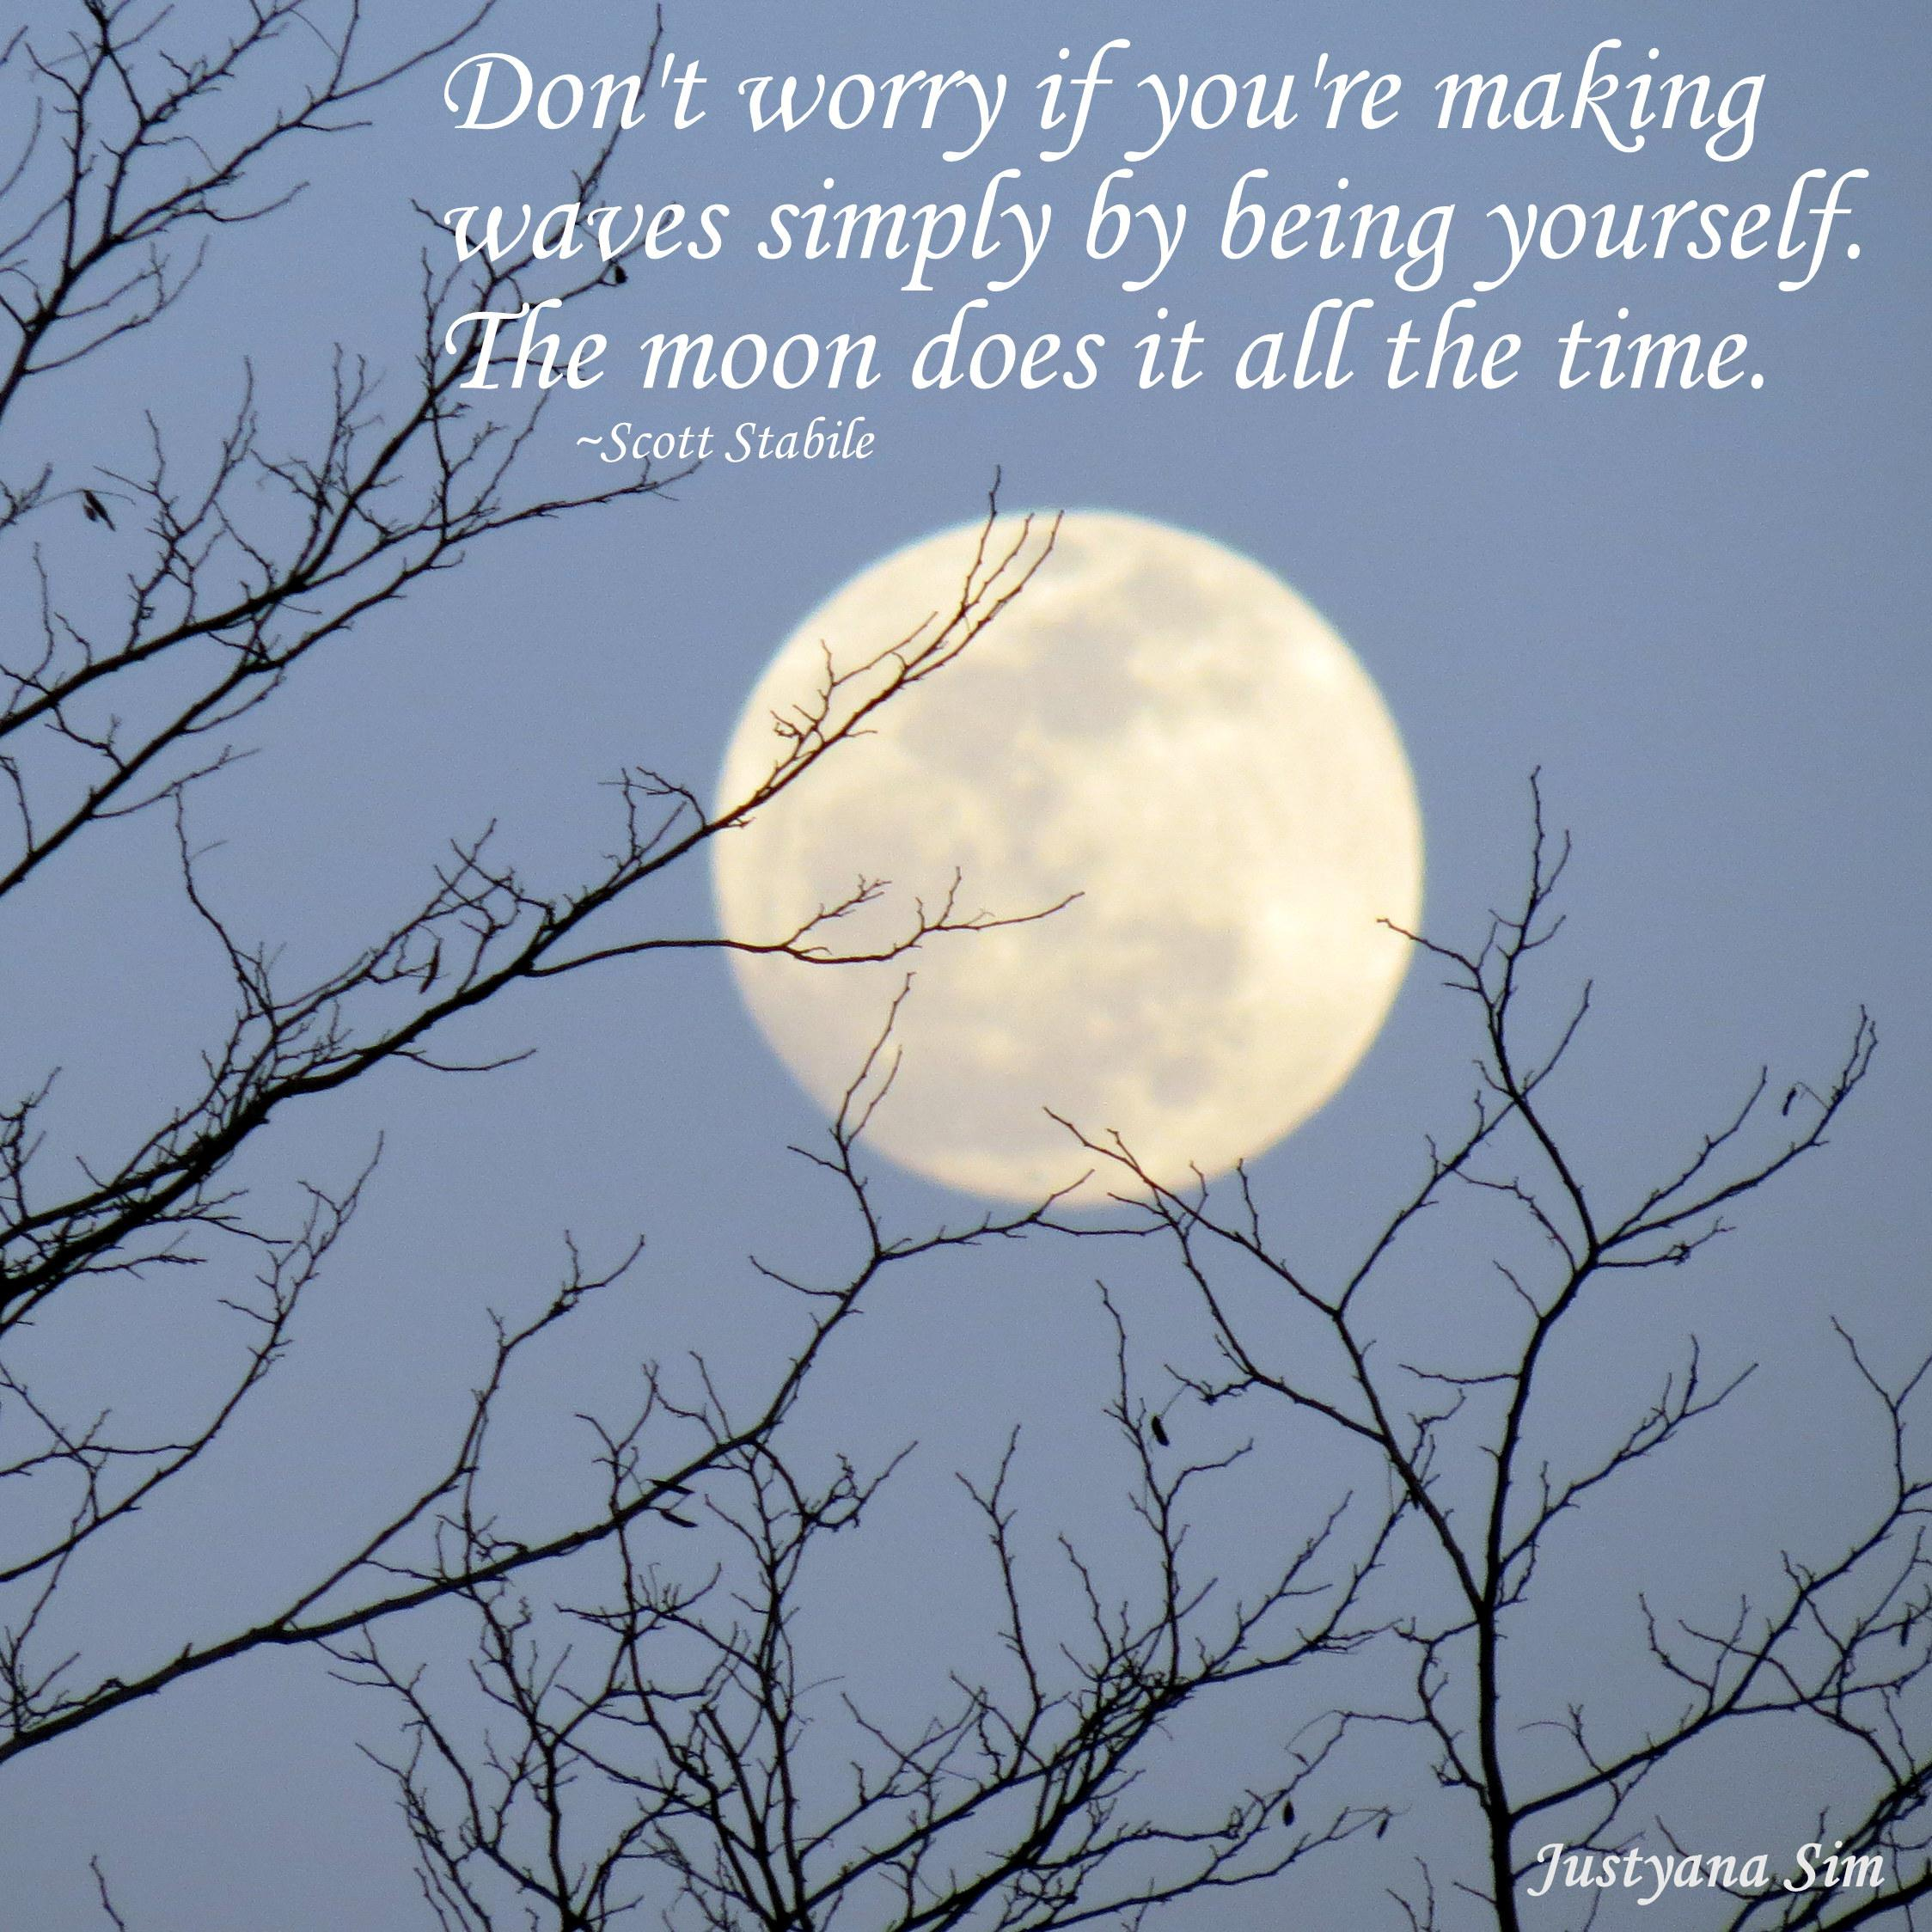 """Don't worry if you're making waves simply by being yourself. The moon does it all the time."" -Scott Stabile (2248×2248)"